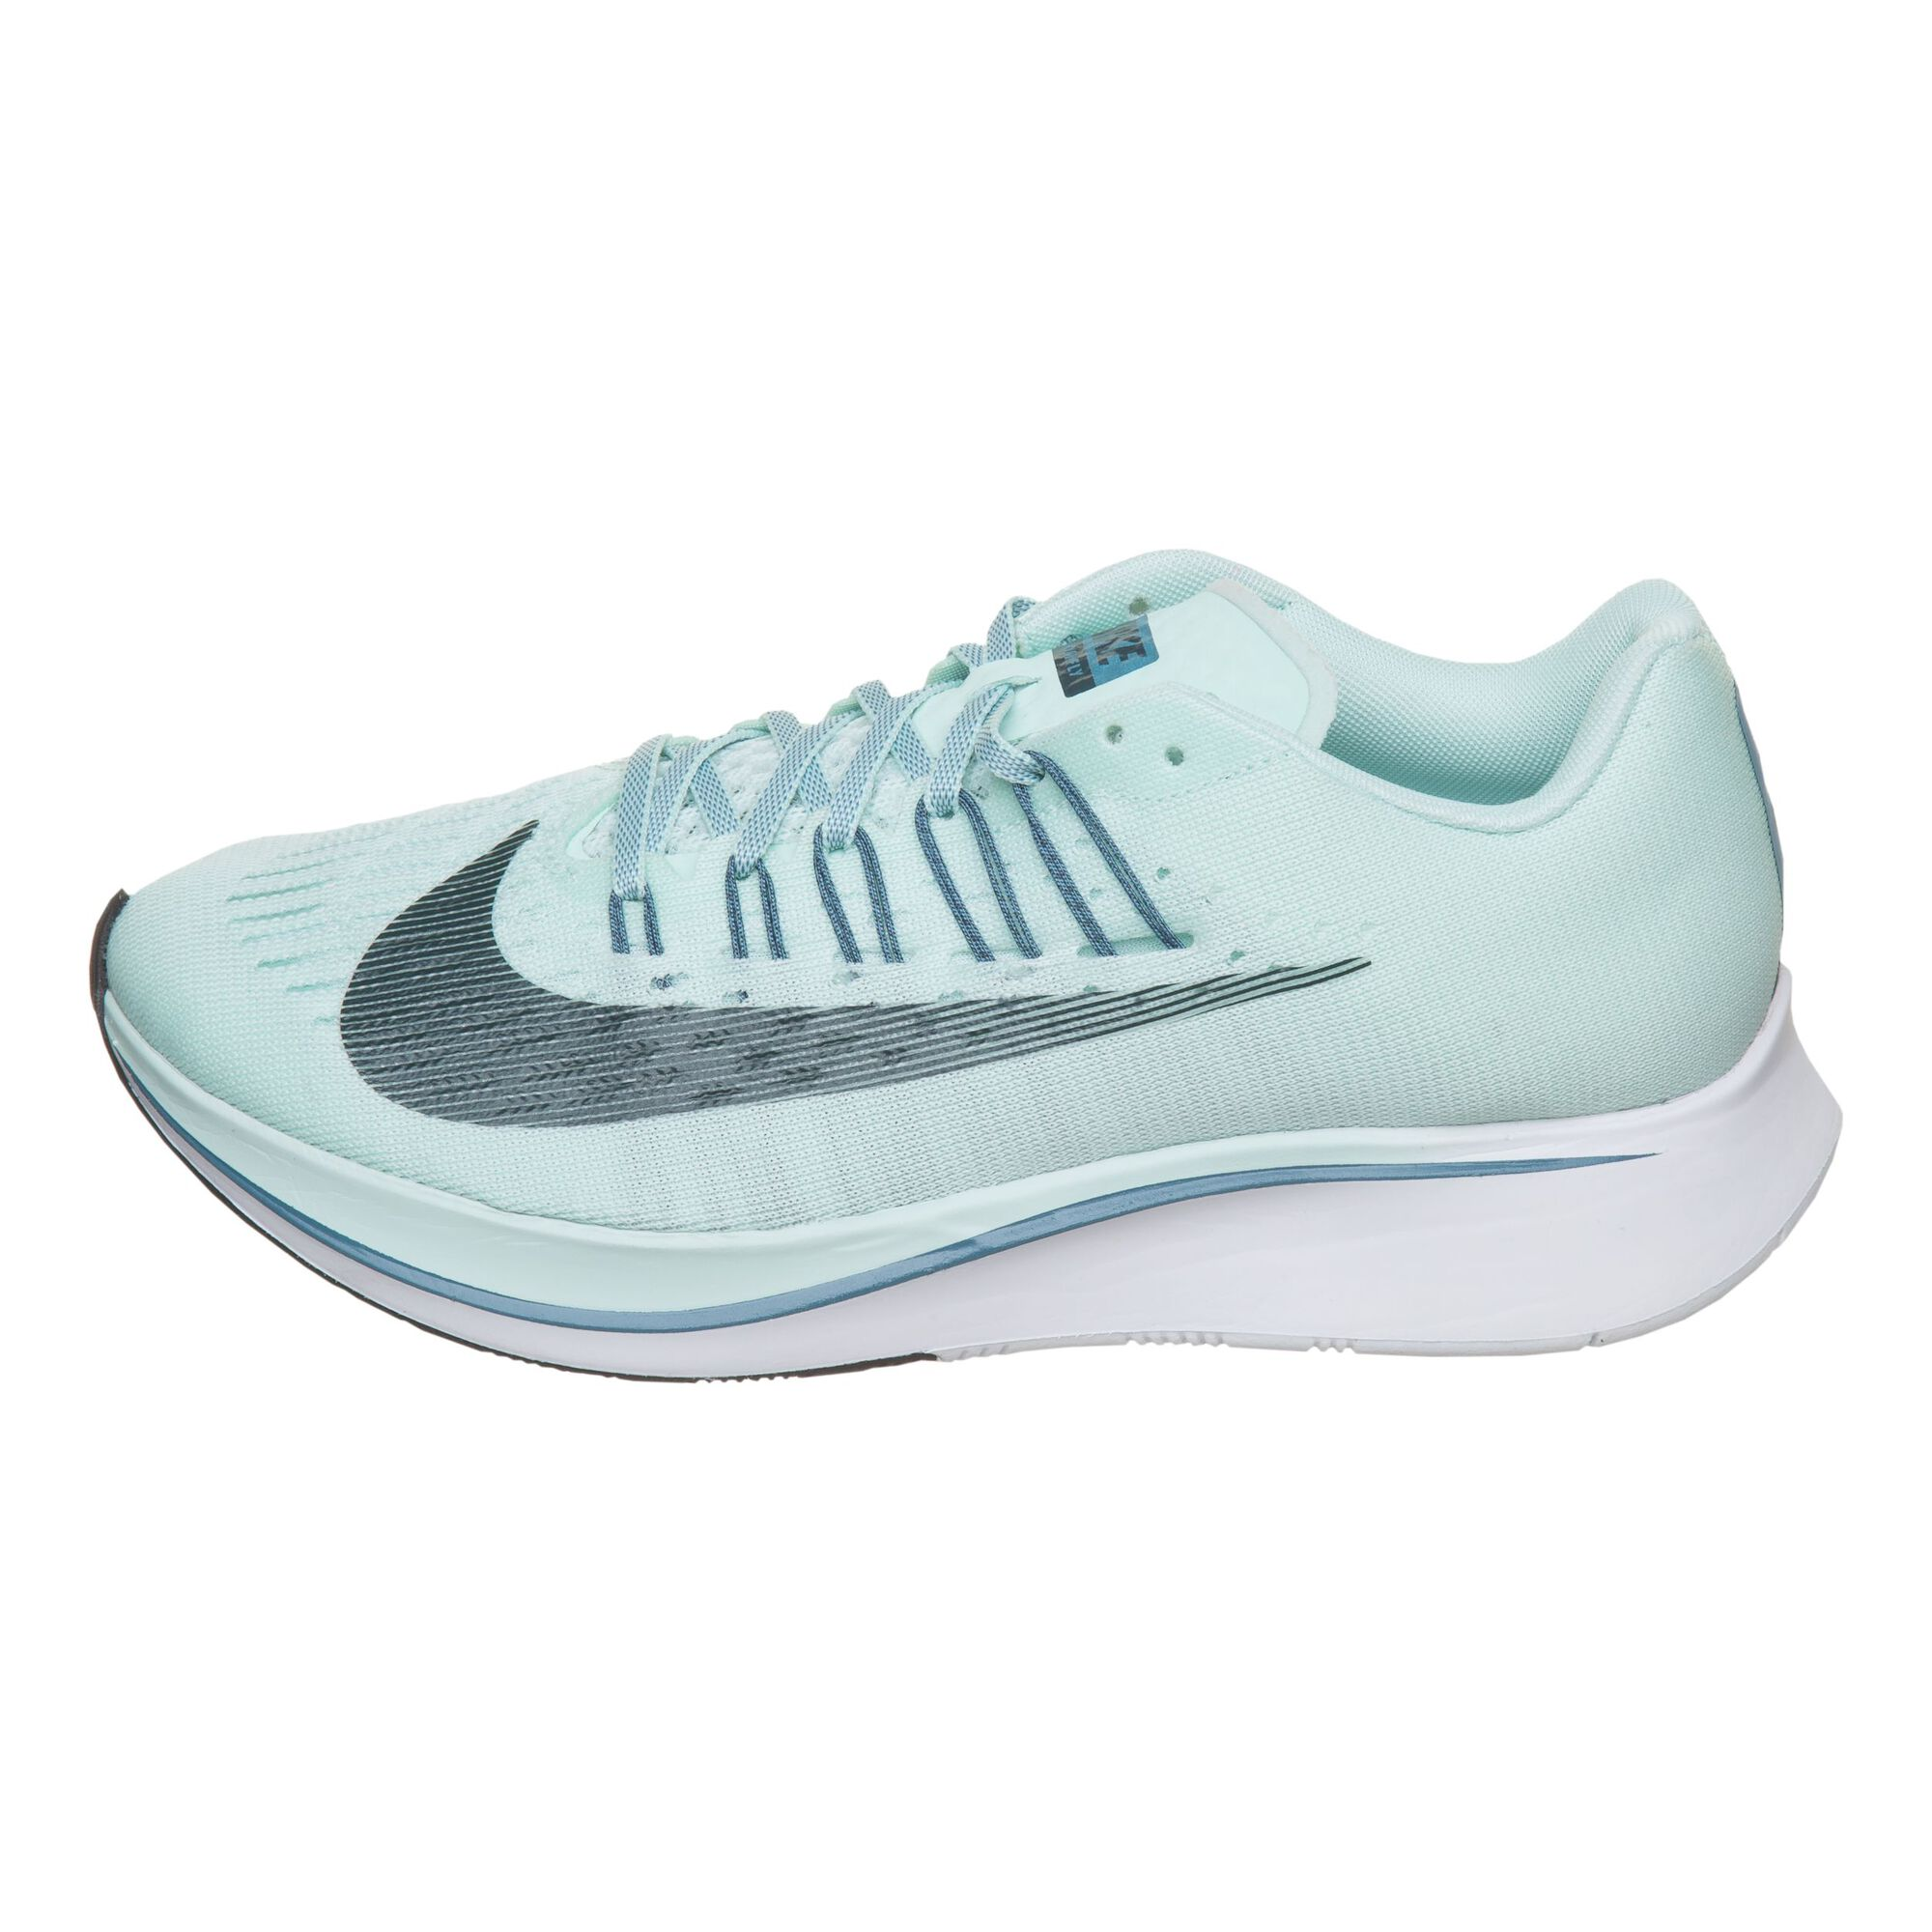 62b5bf891a533 buy Nike Zoom Fly Neutral Running Shoe Women - Mint